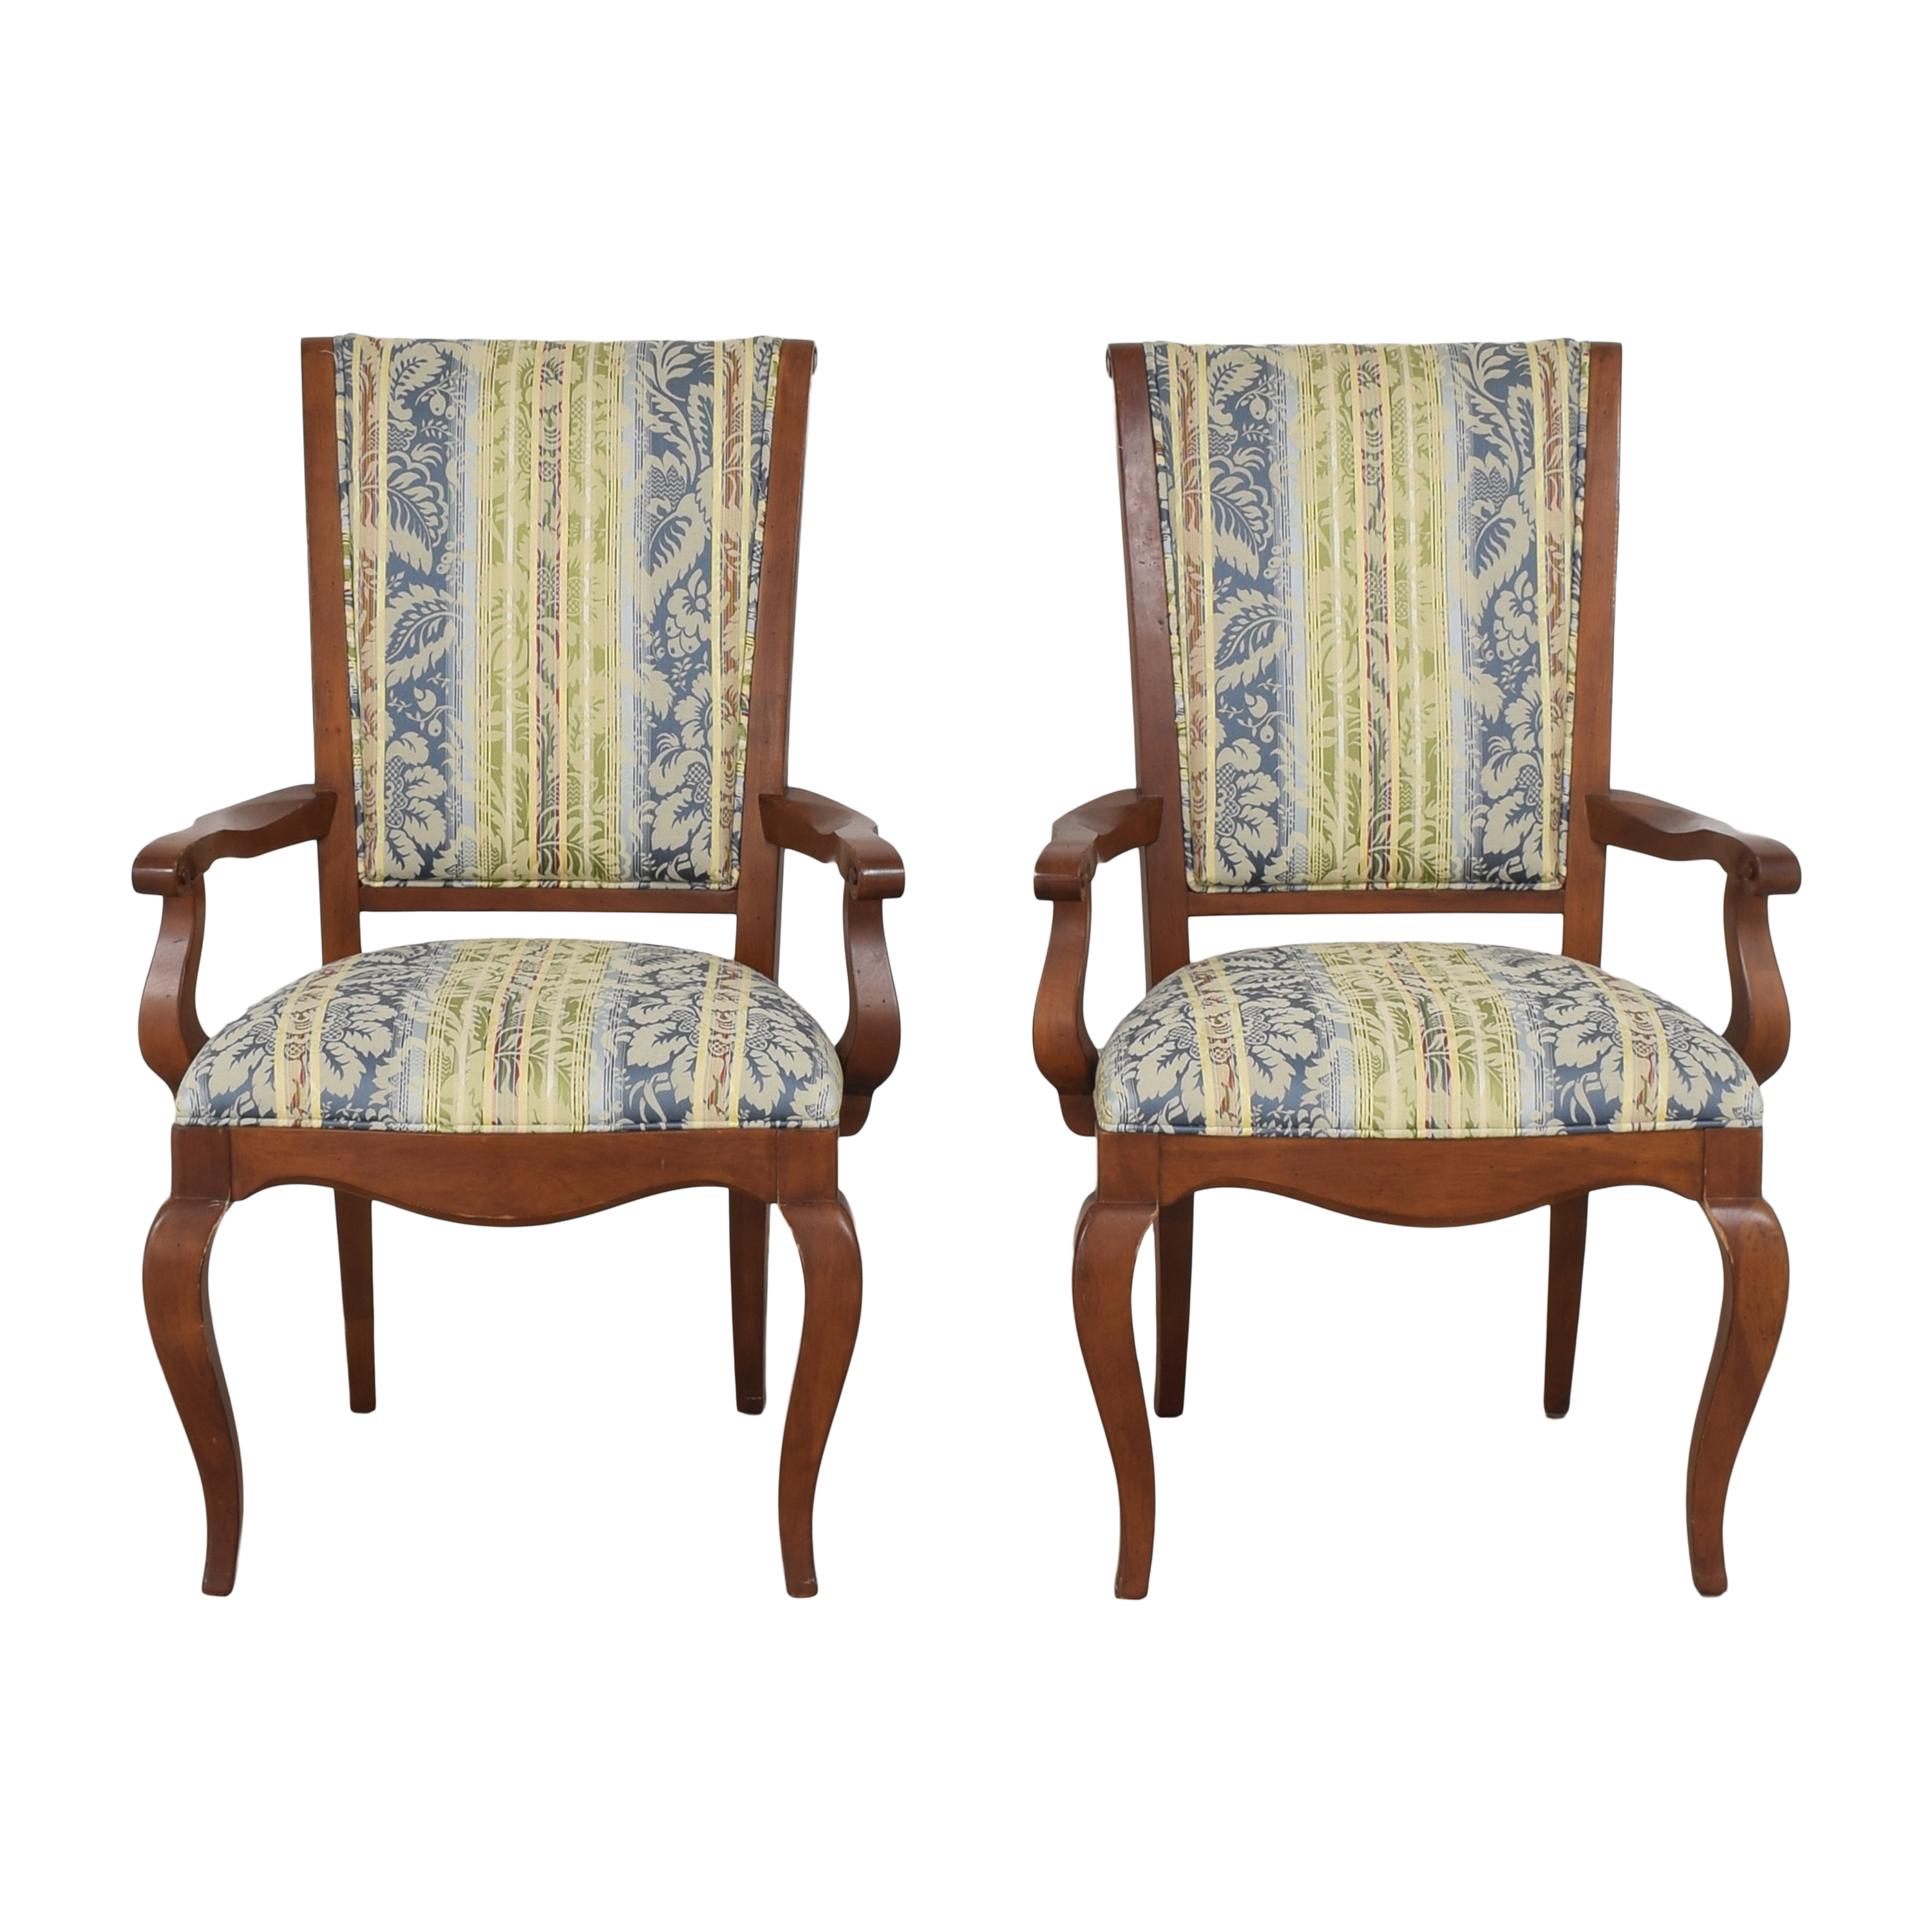 Ethan Allen Ethan Allen Upholstered Dining Arm Chairs for sale